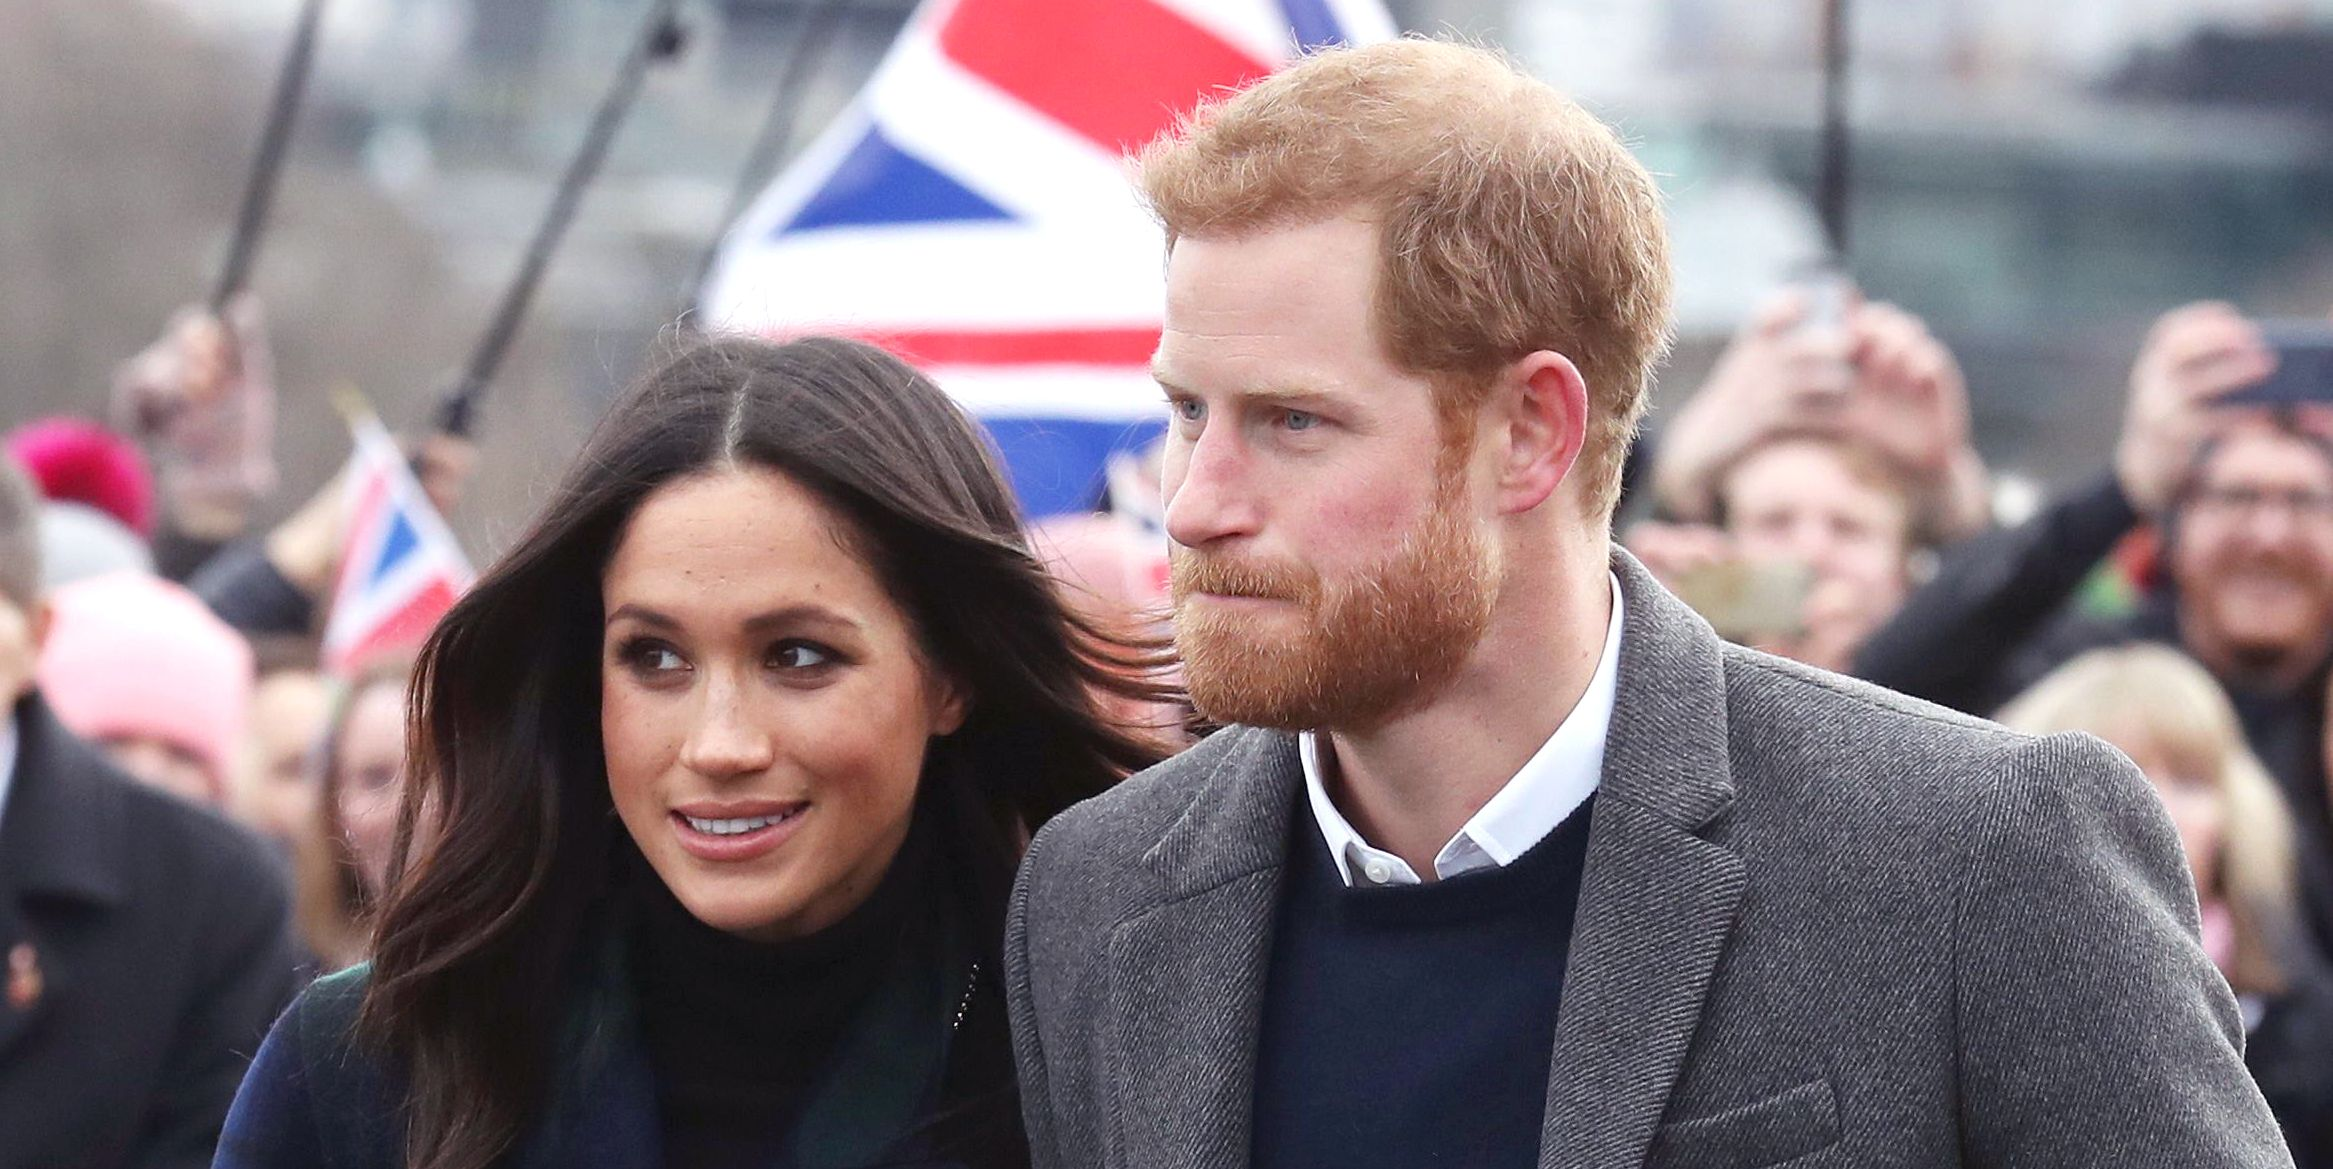 Meghan Markle and Prince Harry Have Anthrax Scare After Receiving a Letter Containing White Powder